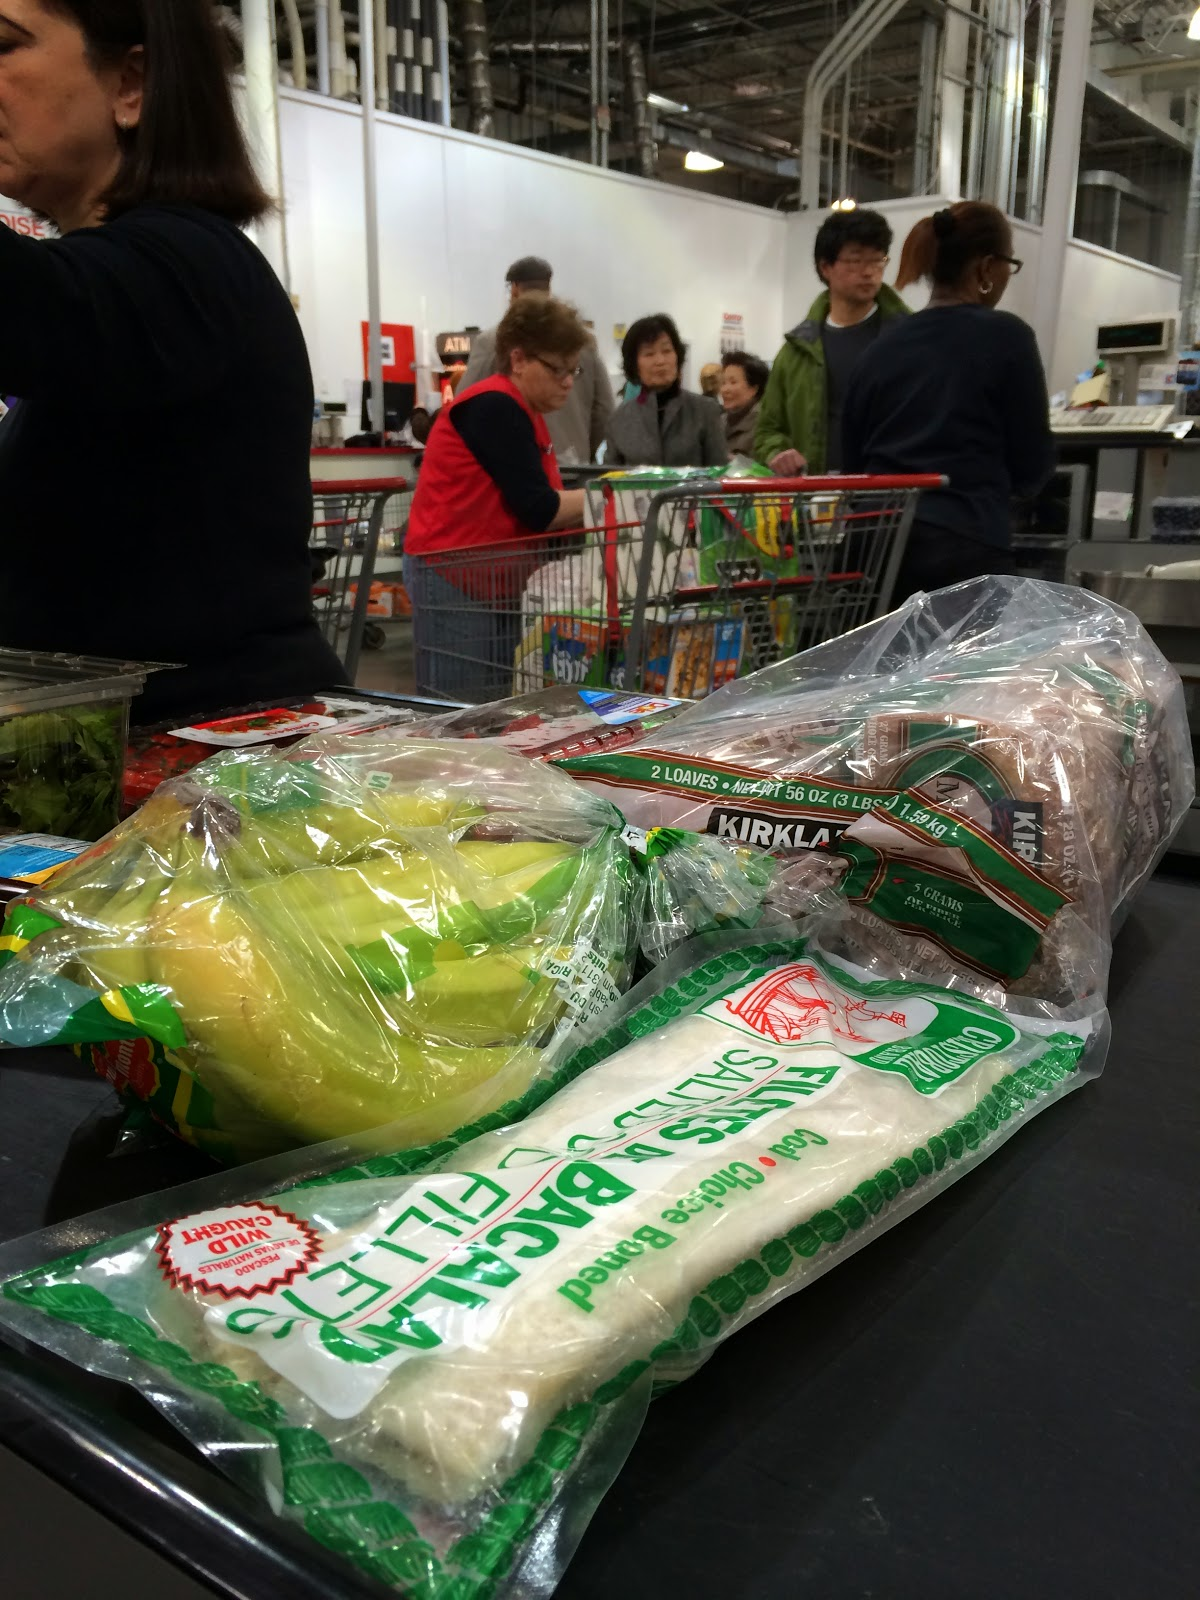 1113b9ec243c3 At Costco in Hackensack on Friday afternoon, my haul included 3 pounds of  bananas ($1.39), 2 pounds of salted cod-fish fillets from Canada ($11.99),  ...